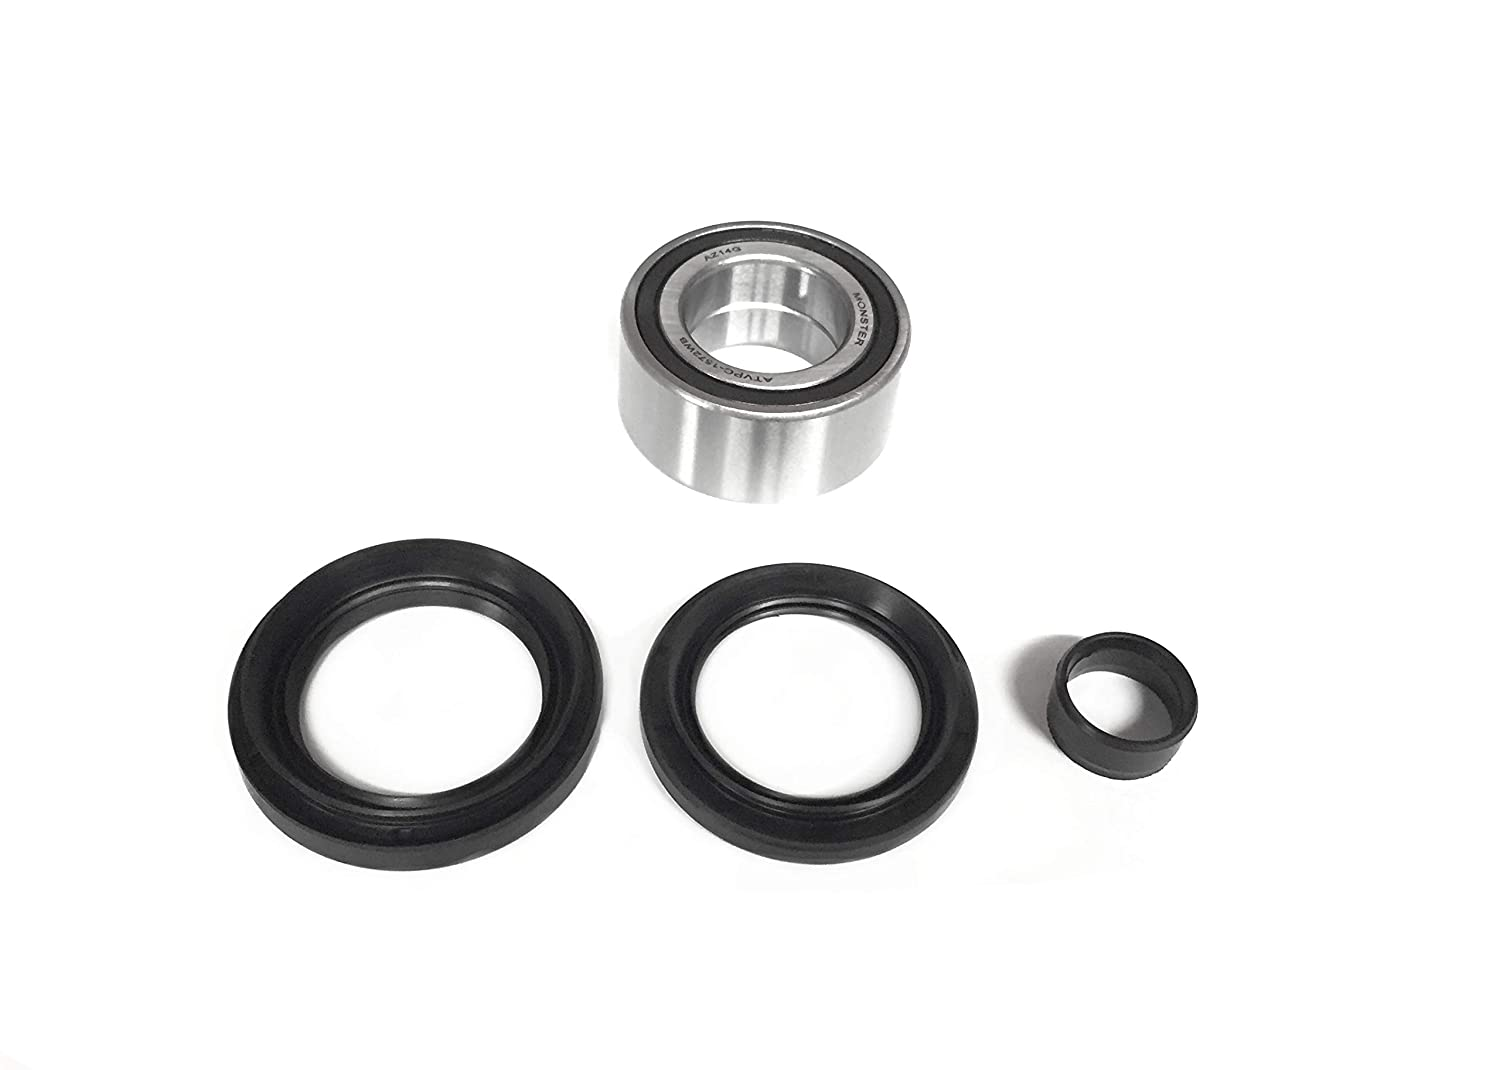 ATV Parts Connection Front Wheel Bearing /& Seal Kit for Honda Rubicon 500 Foreman 500 /& Rincon 680 4x4 ATV